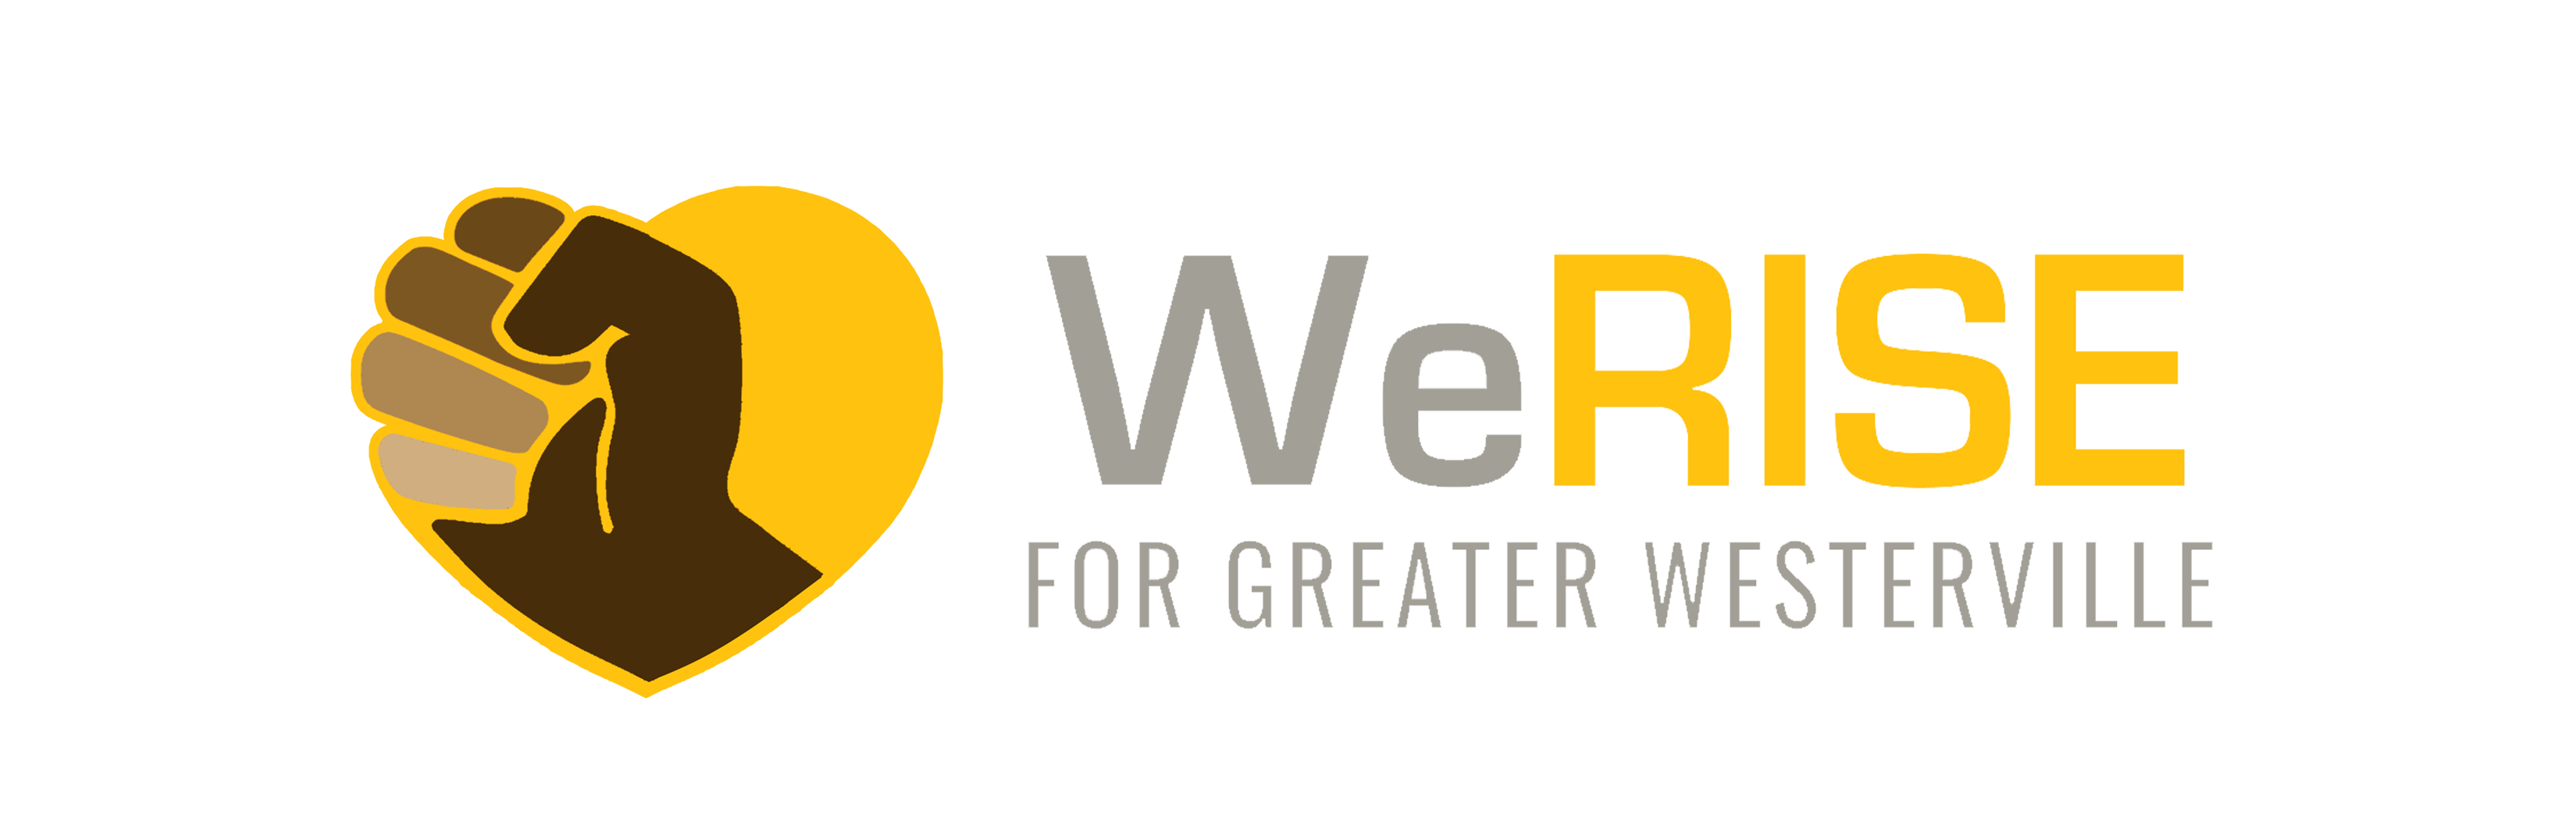 WeRISE for Greater Westerville